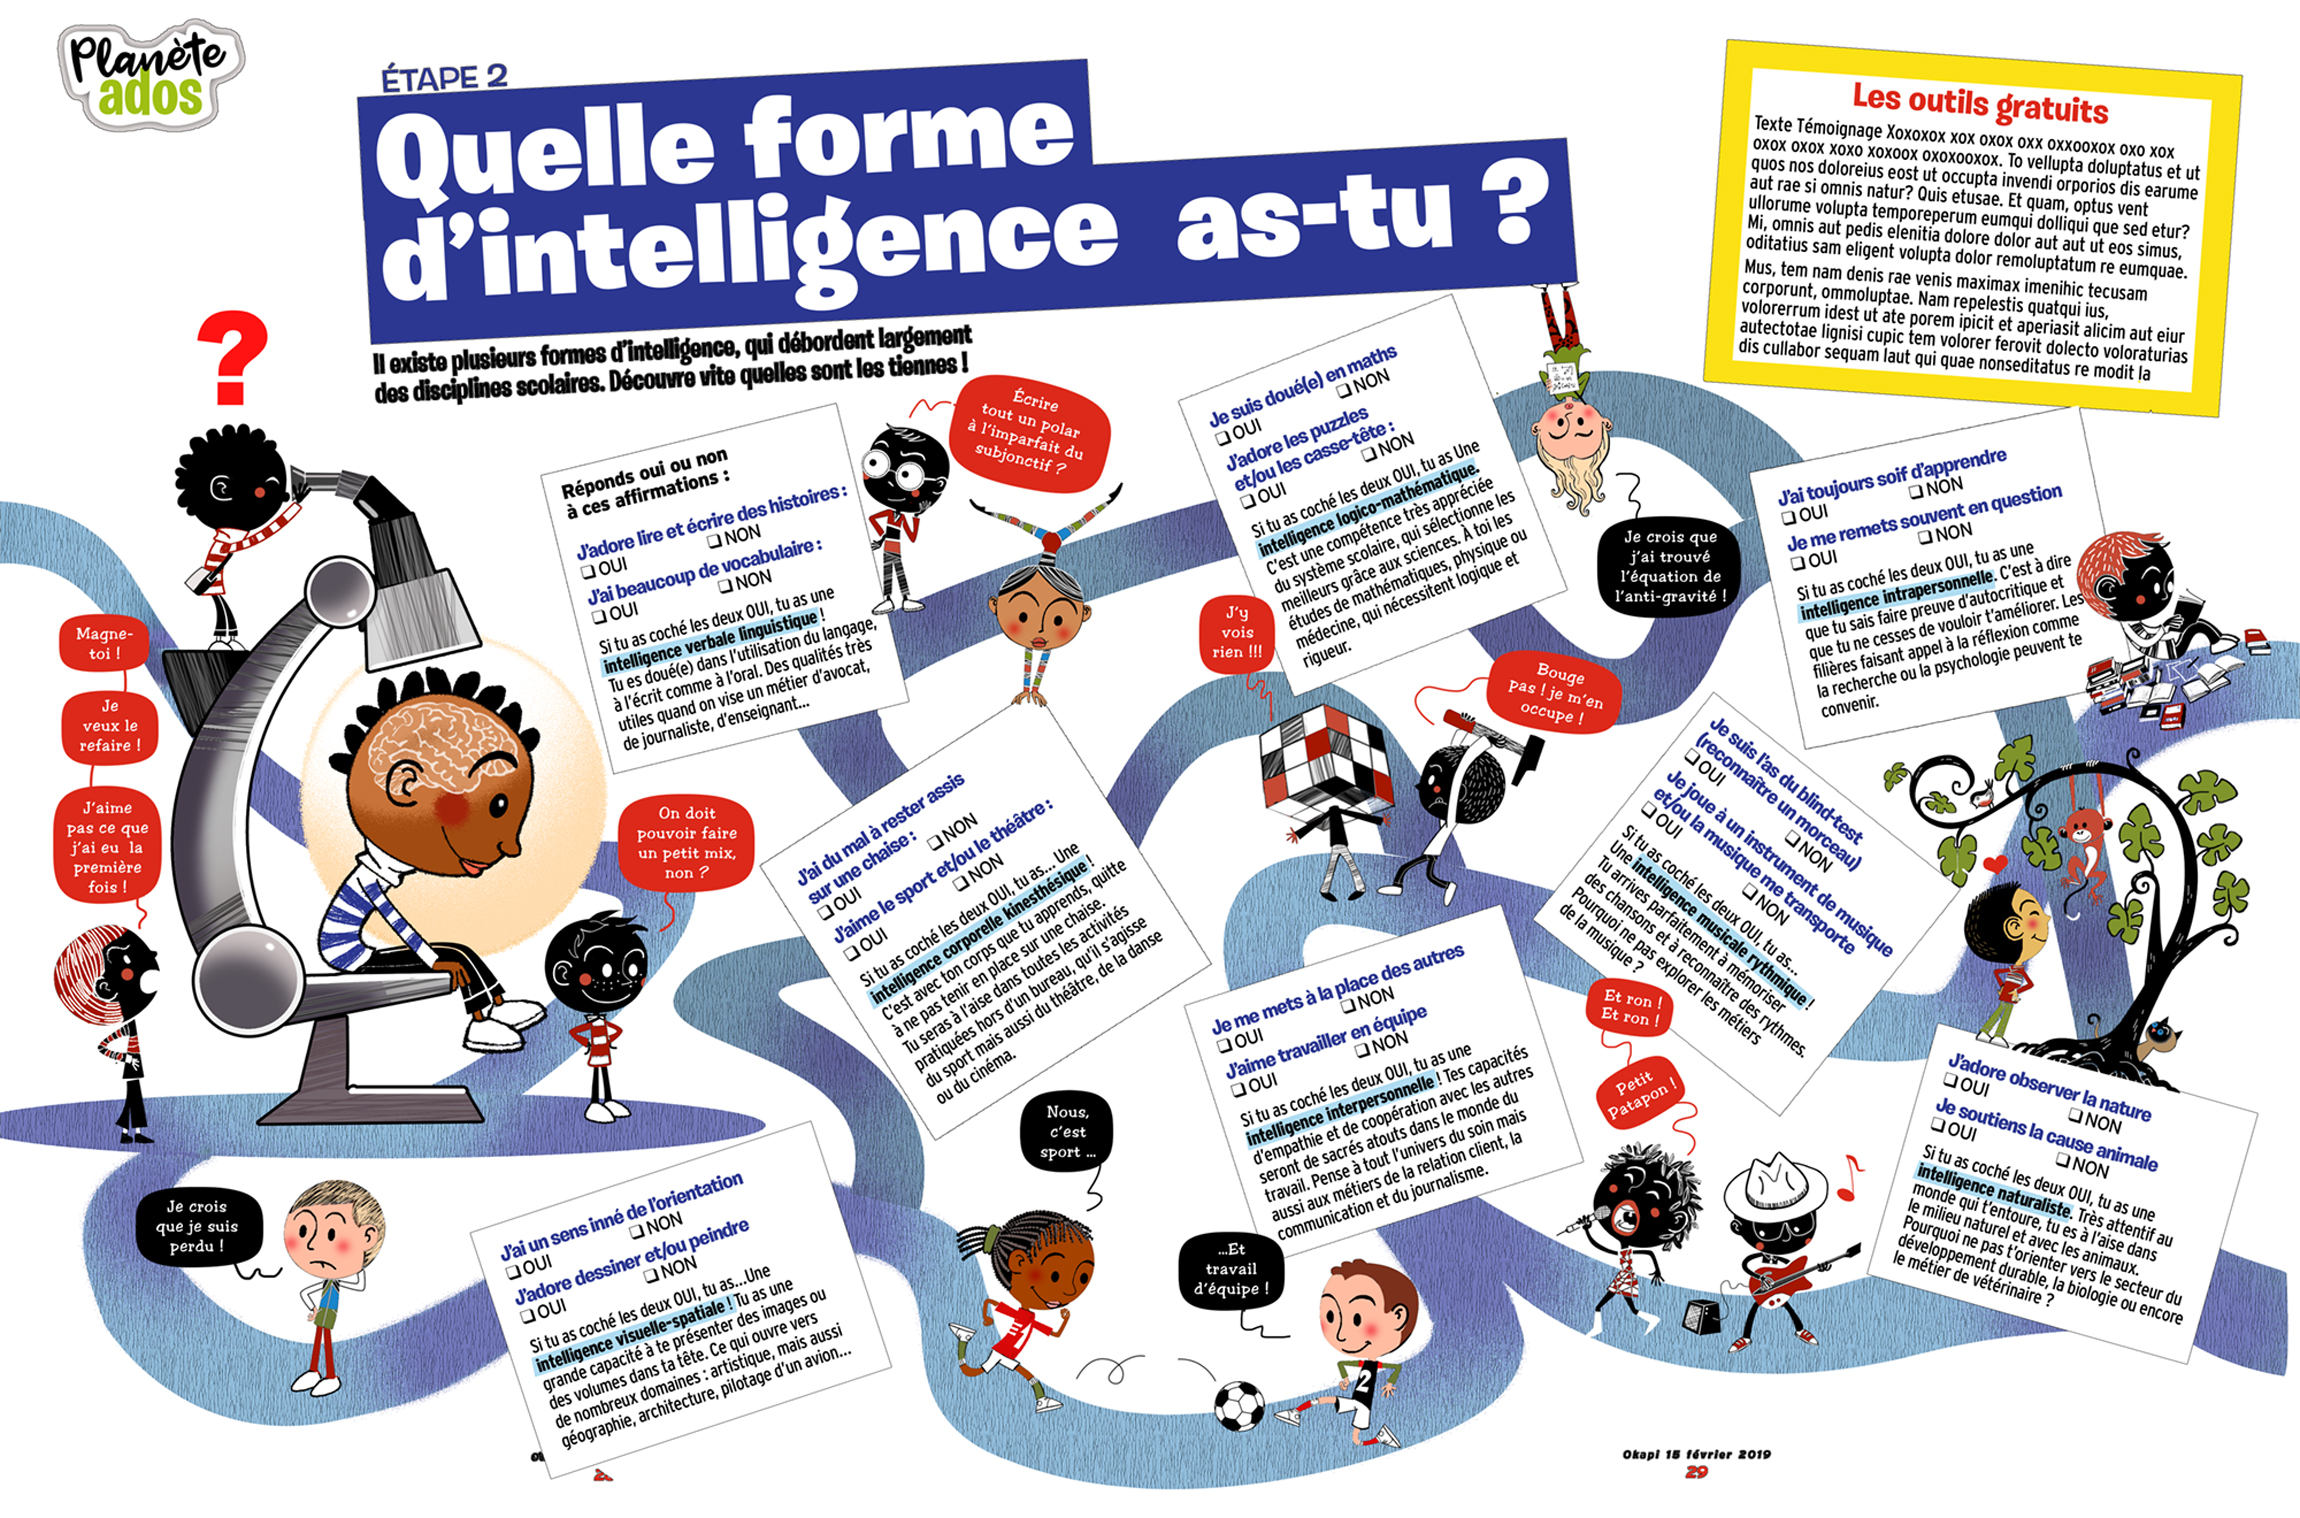 Quelle forme d'intelligence as-tu ? Différents cas de figures